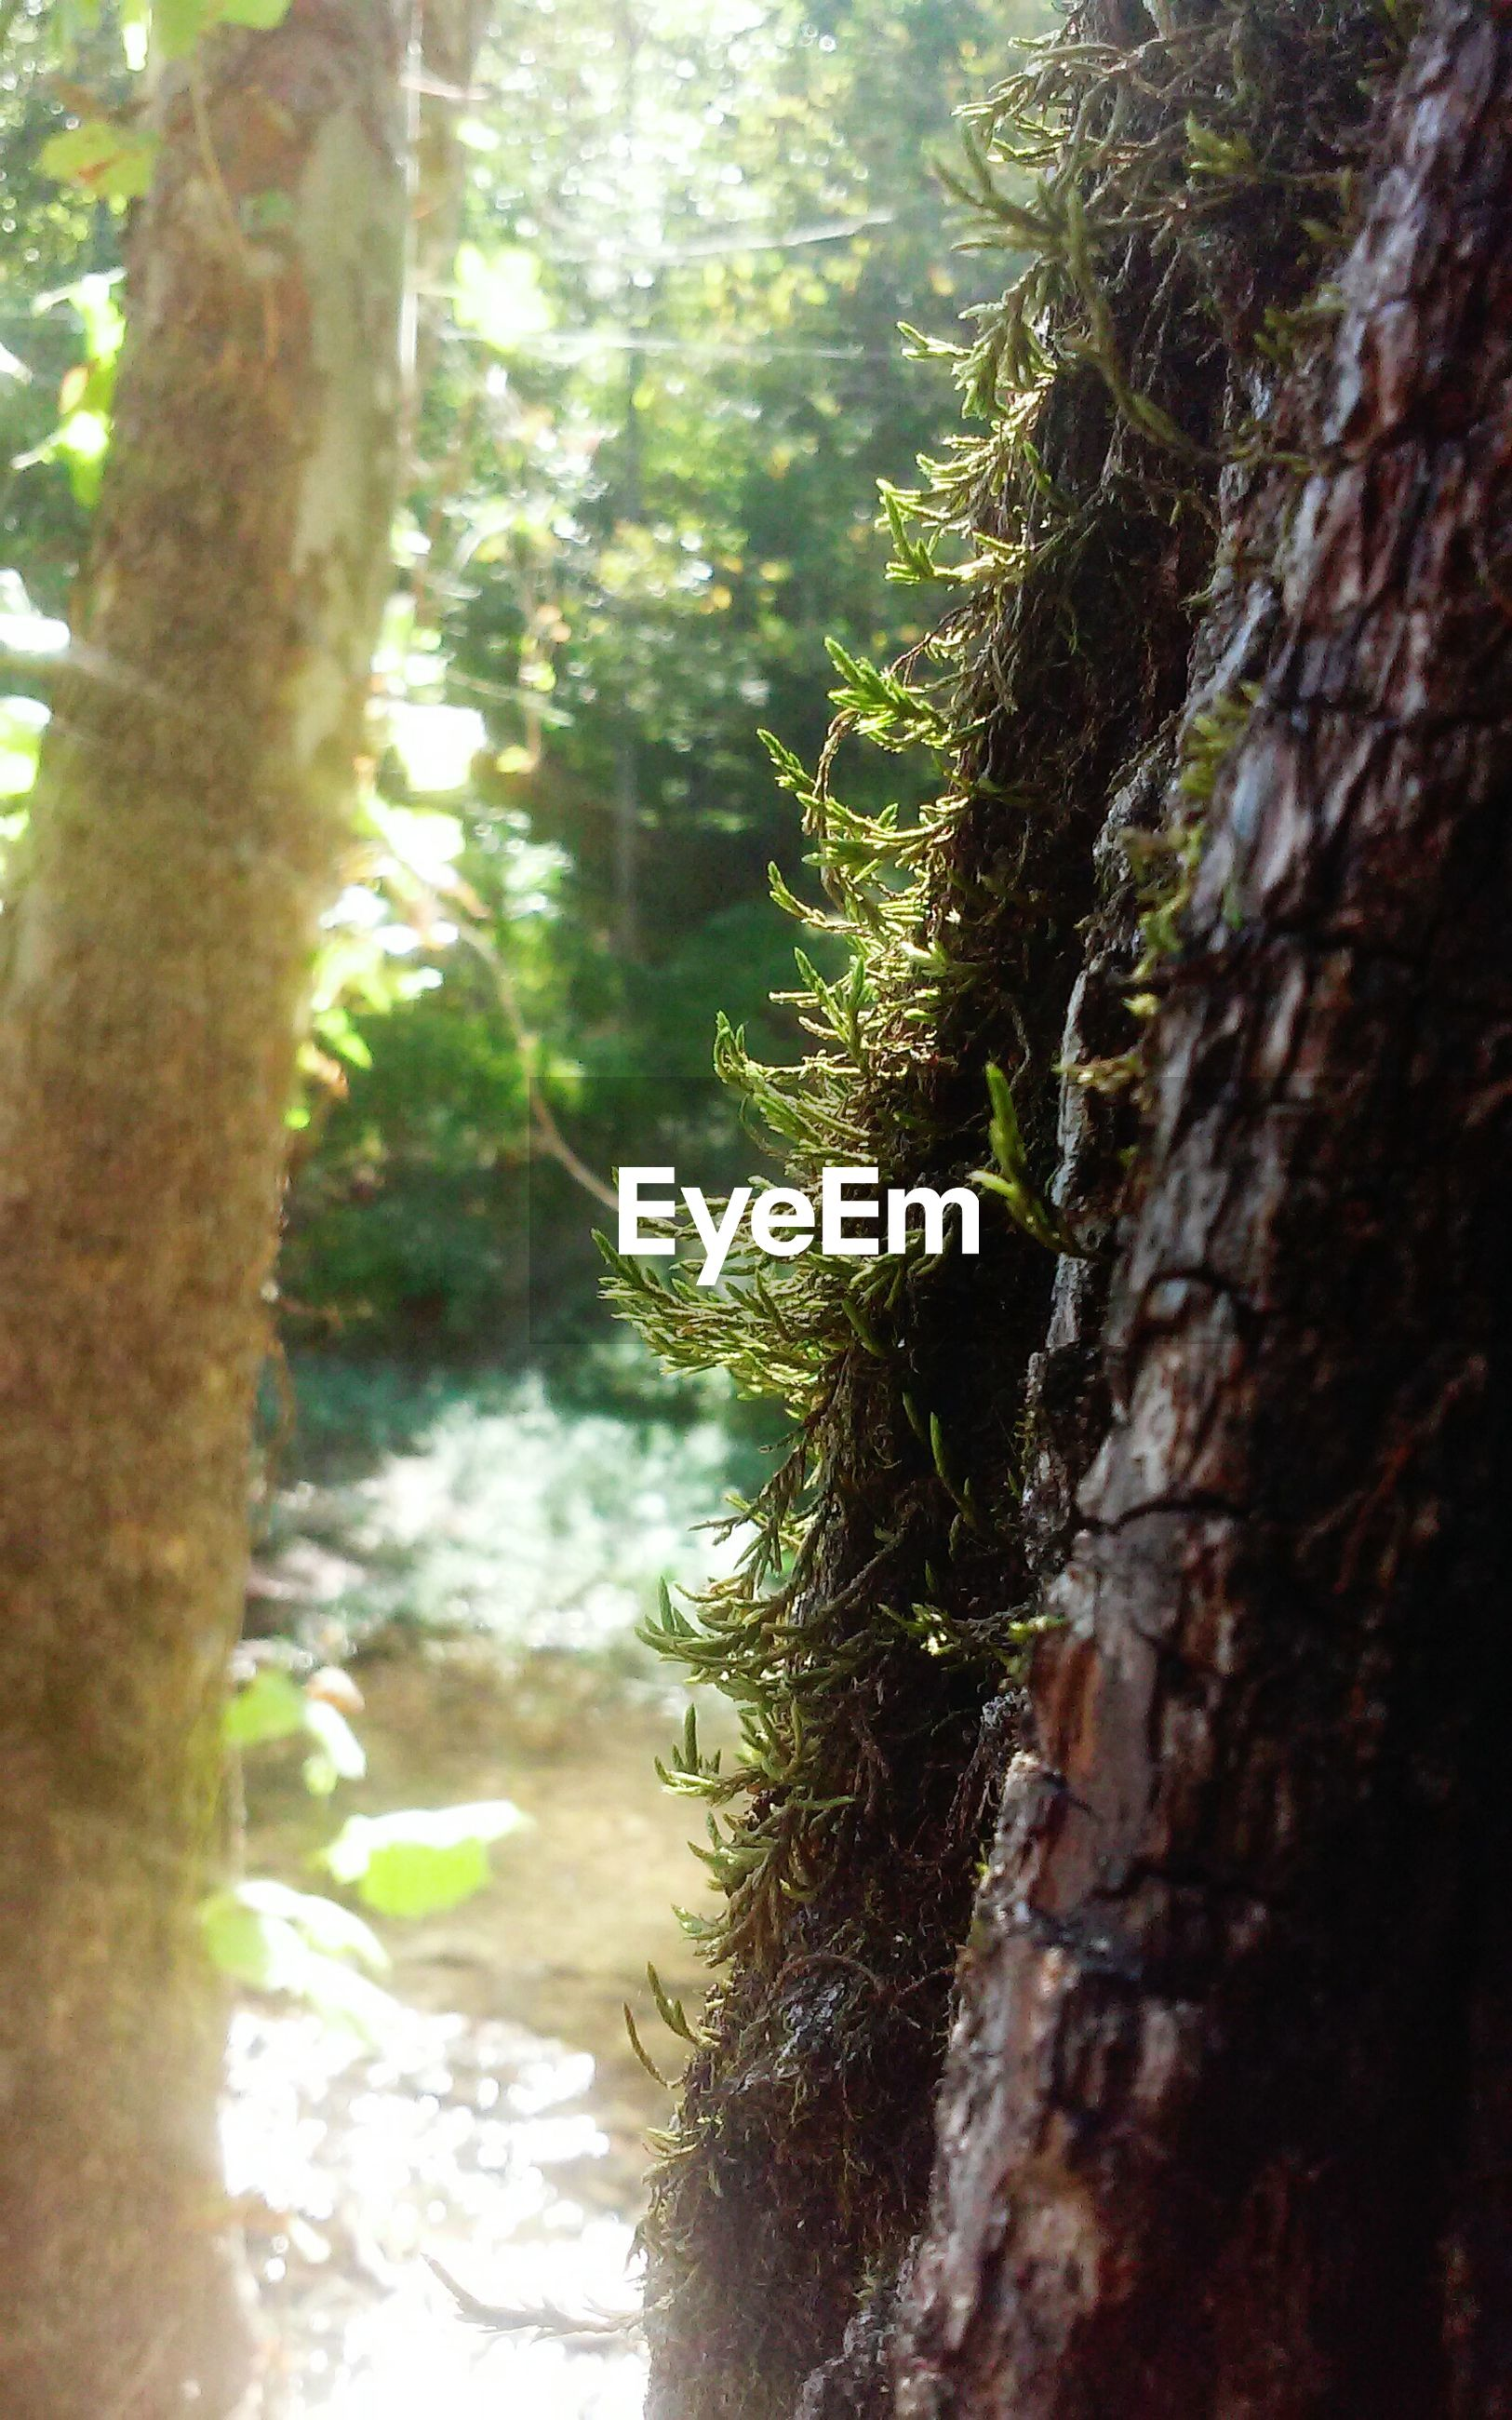 tree trunk, tree, nature, growth, day, no people, forest, focus on foreground, tranquility, outdoors, green color, beauty in nature, moss, close-up